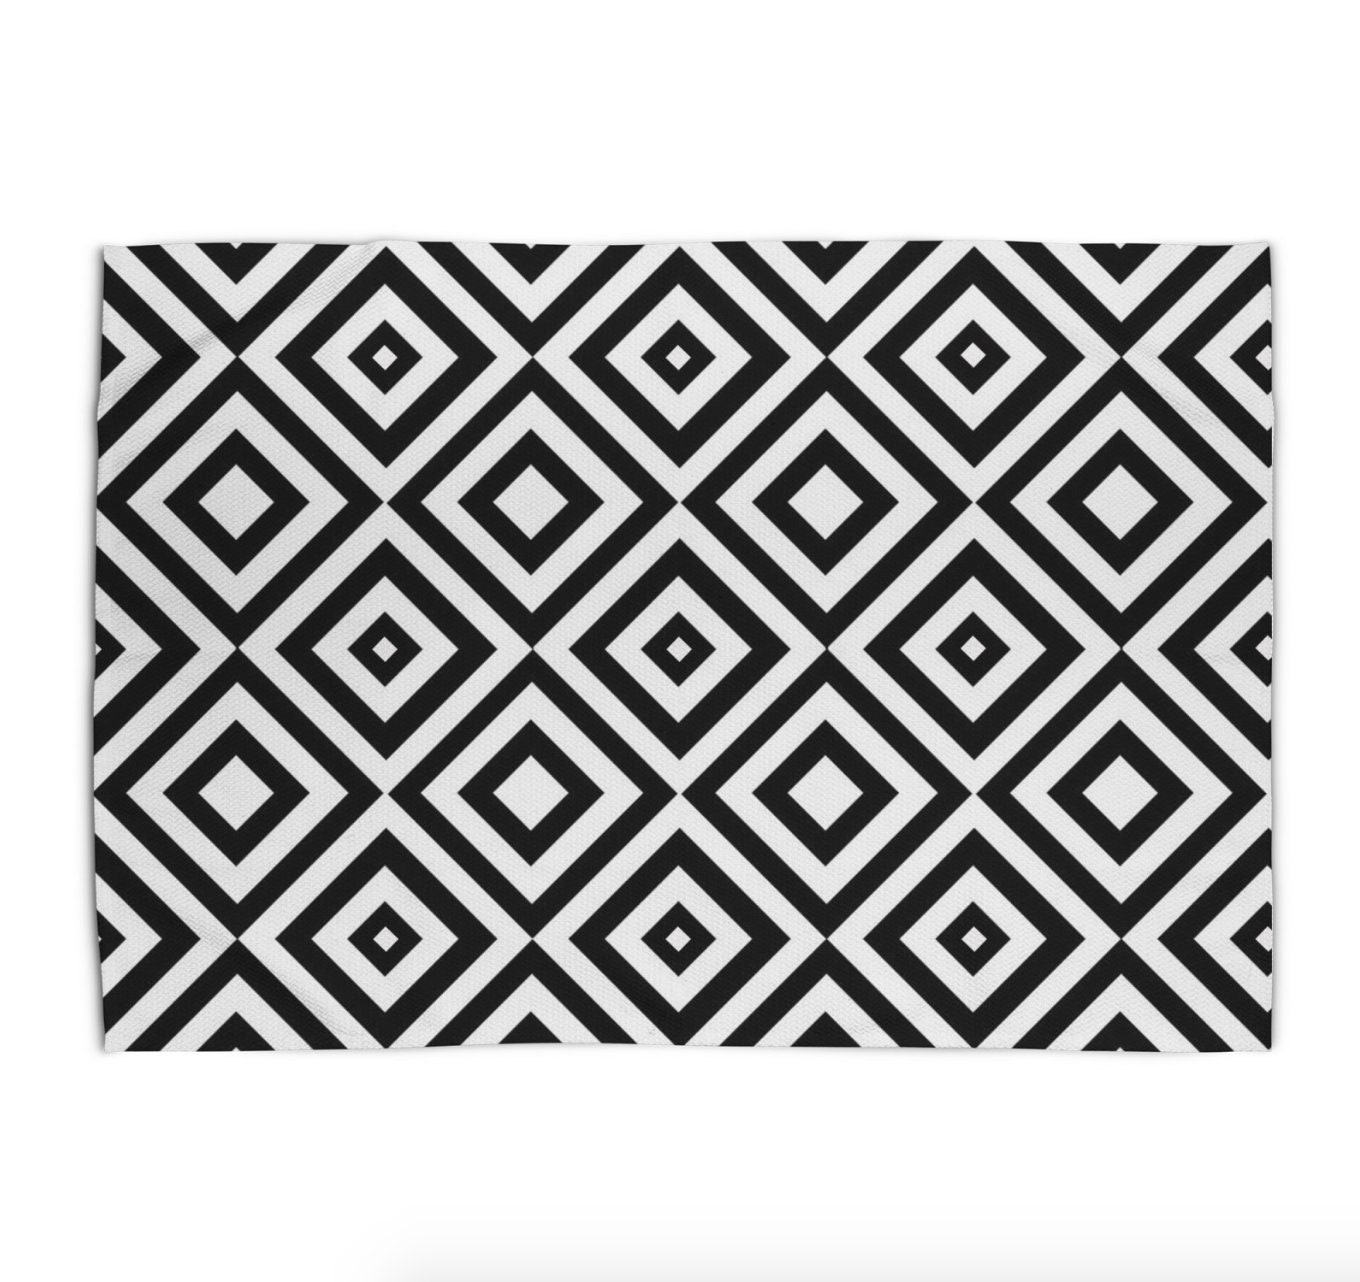 Black And White Area Rug Geometric Print Rug 5x7 Modern Rugs 3x5 4x6 Area Rug 2x3 Flat Weave Throw Rug Bedroom Women Dining Living Room Rug